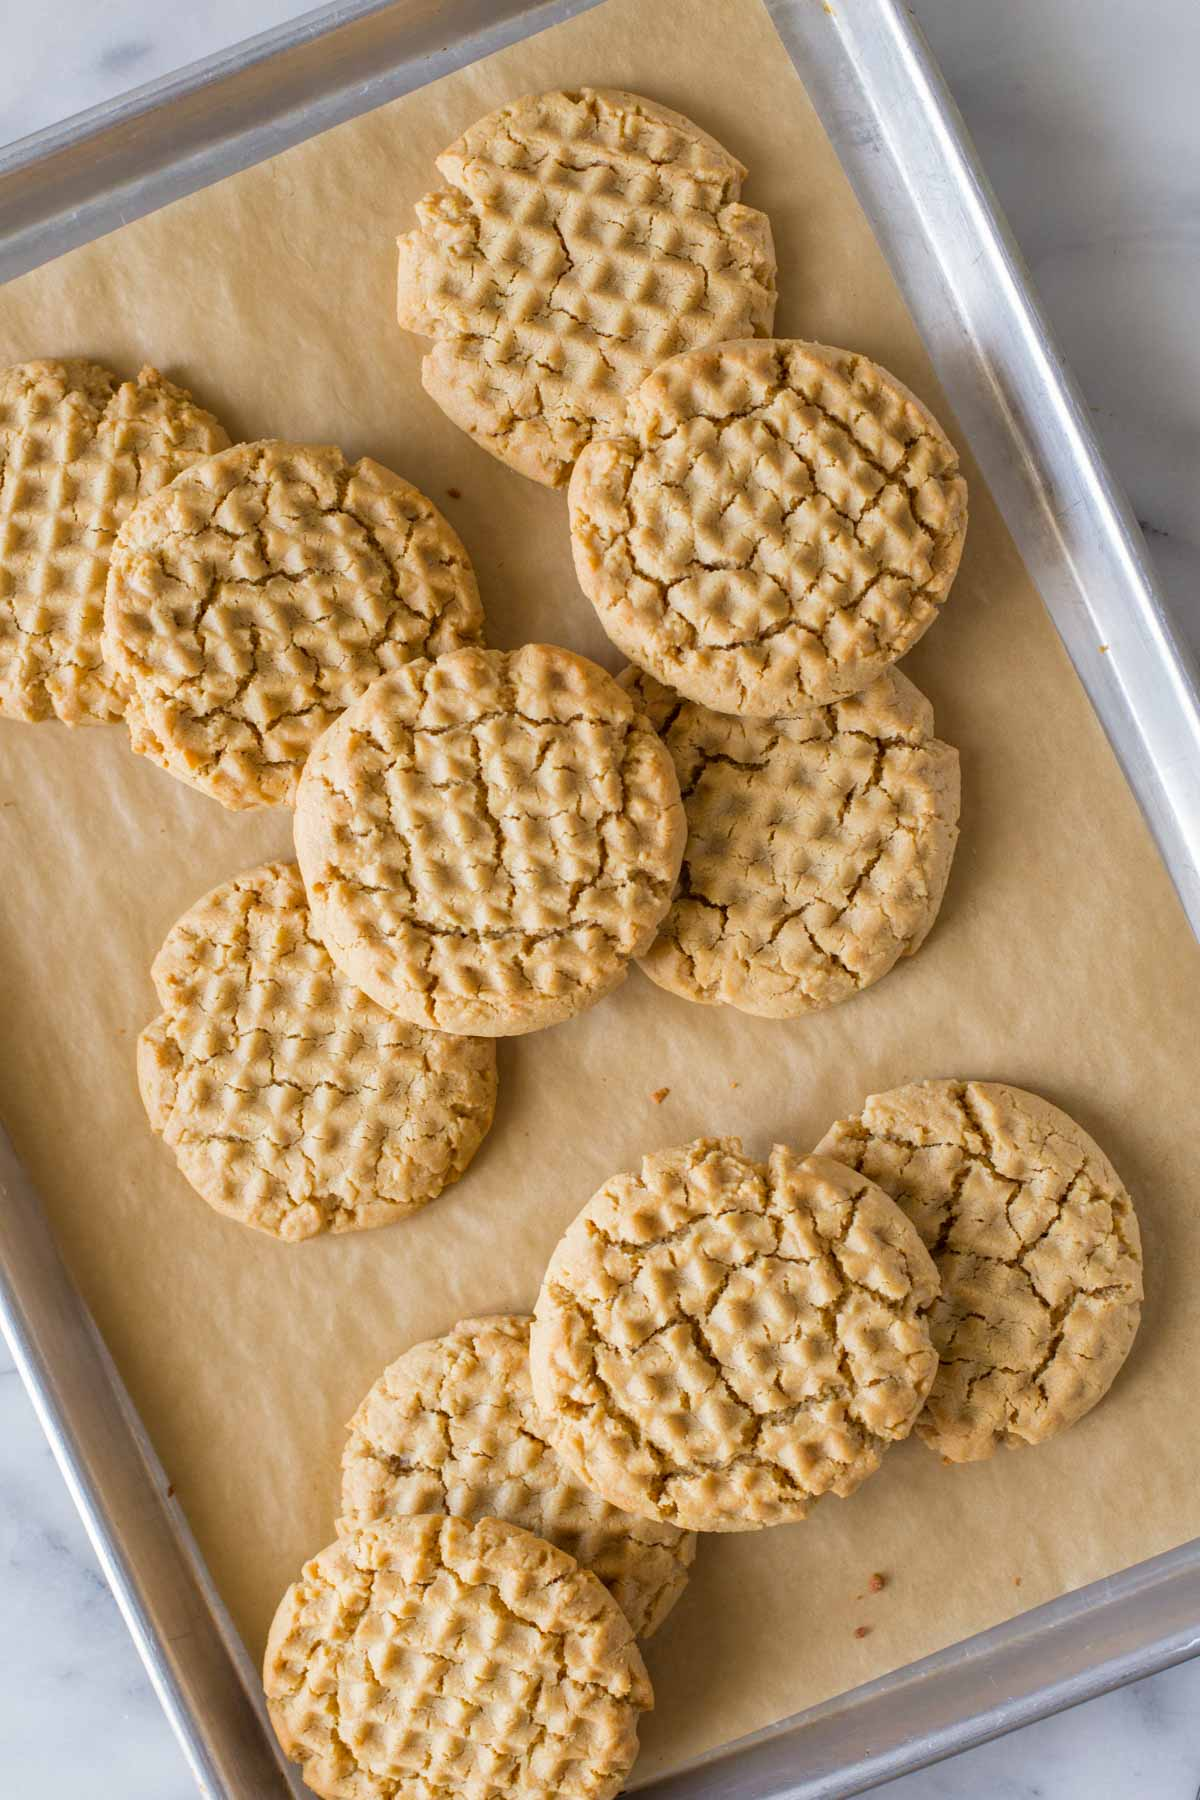 Overhead view of Soft and Chewy Peanut Butter Cookies on a parchment lined baking sheet.